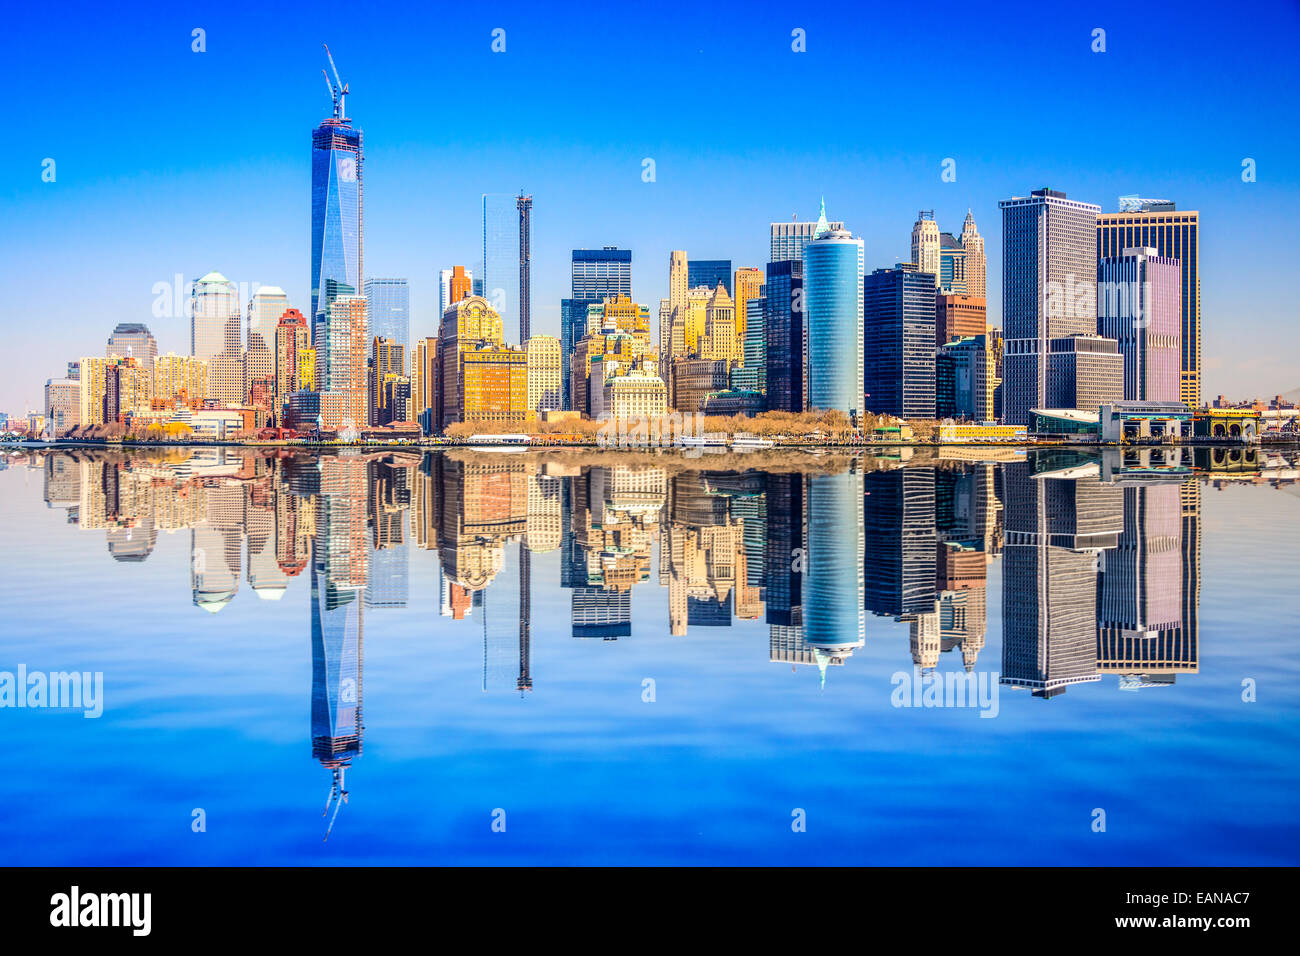 New York City, USA city skyline of Lower Manhattan. - Stock Image